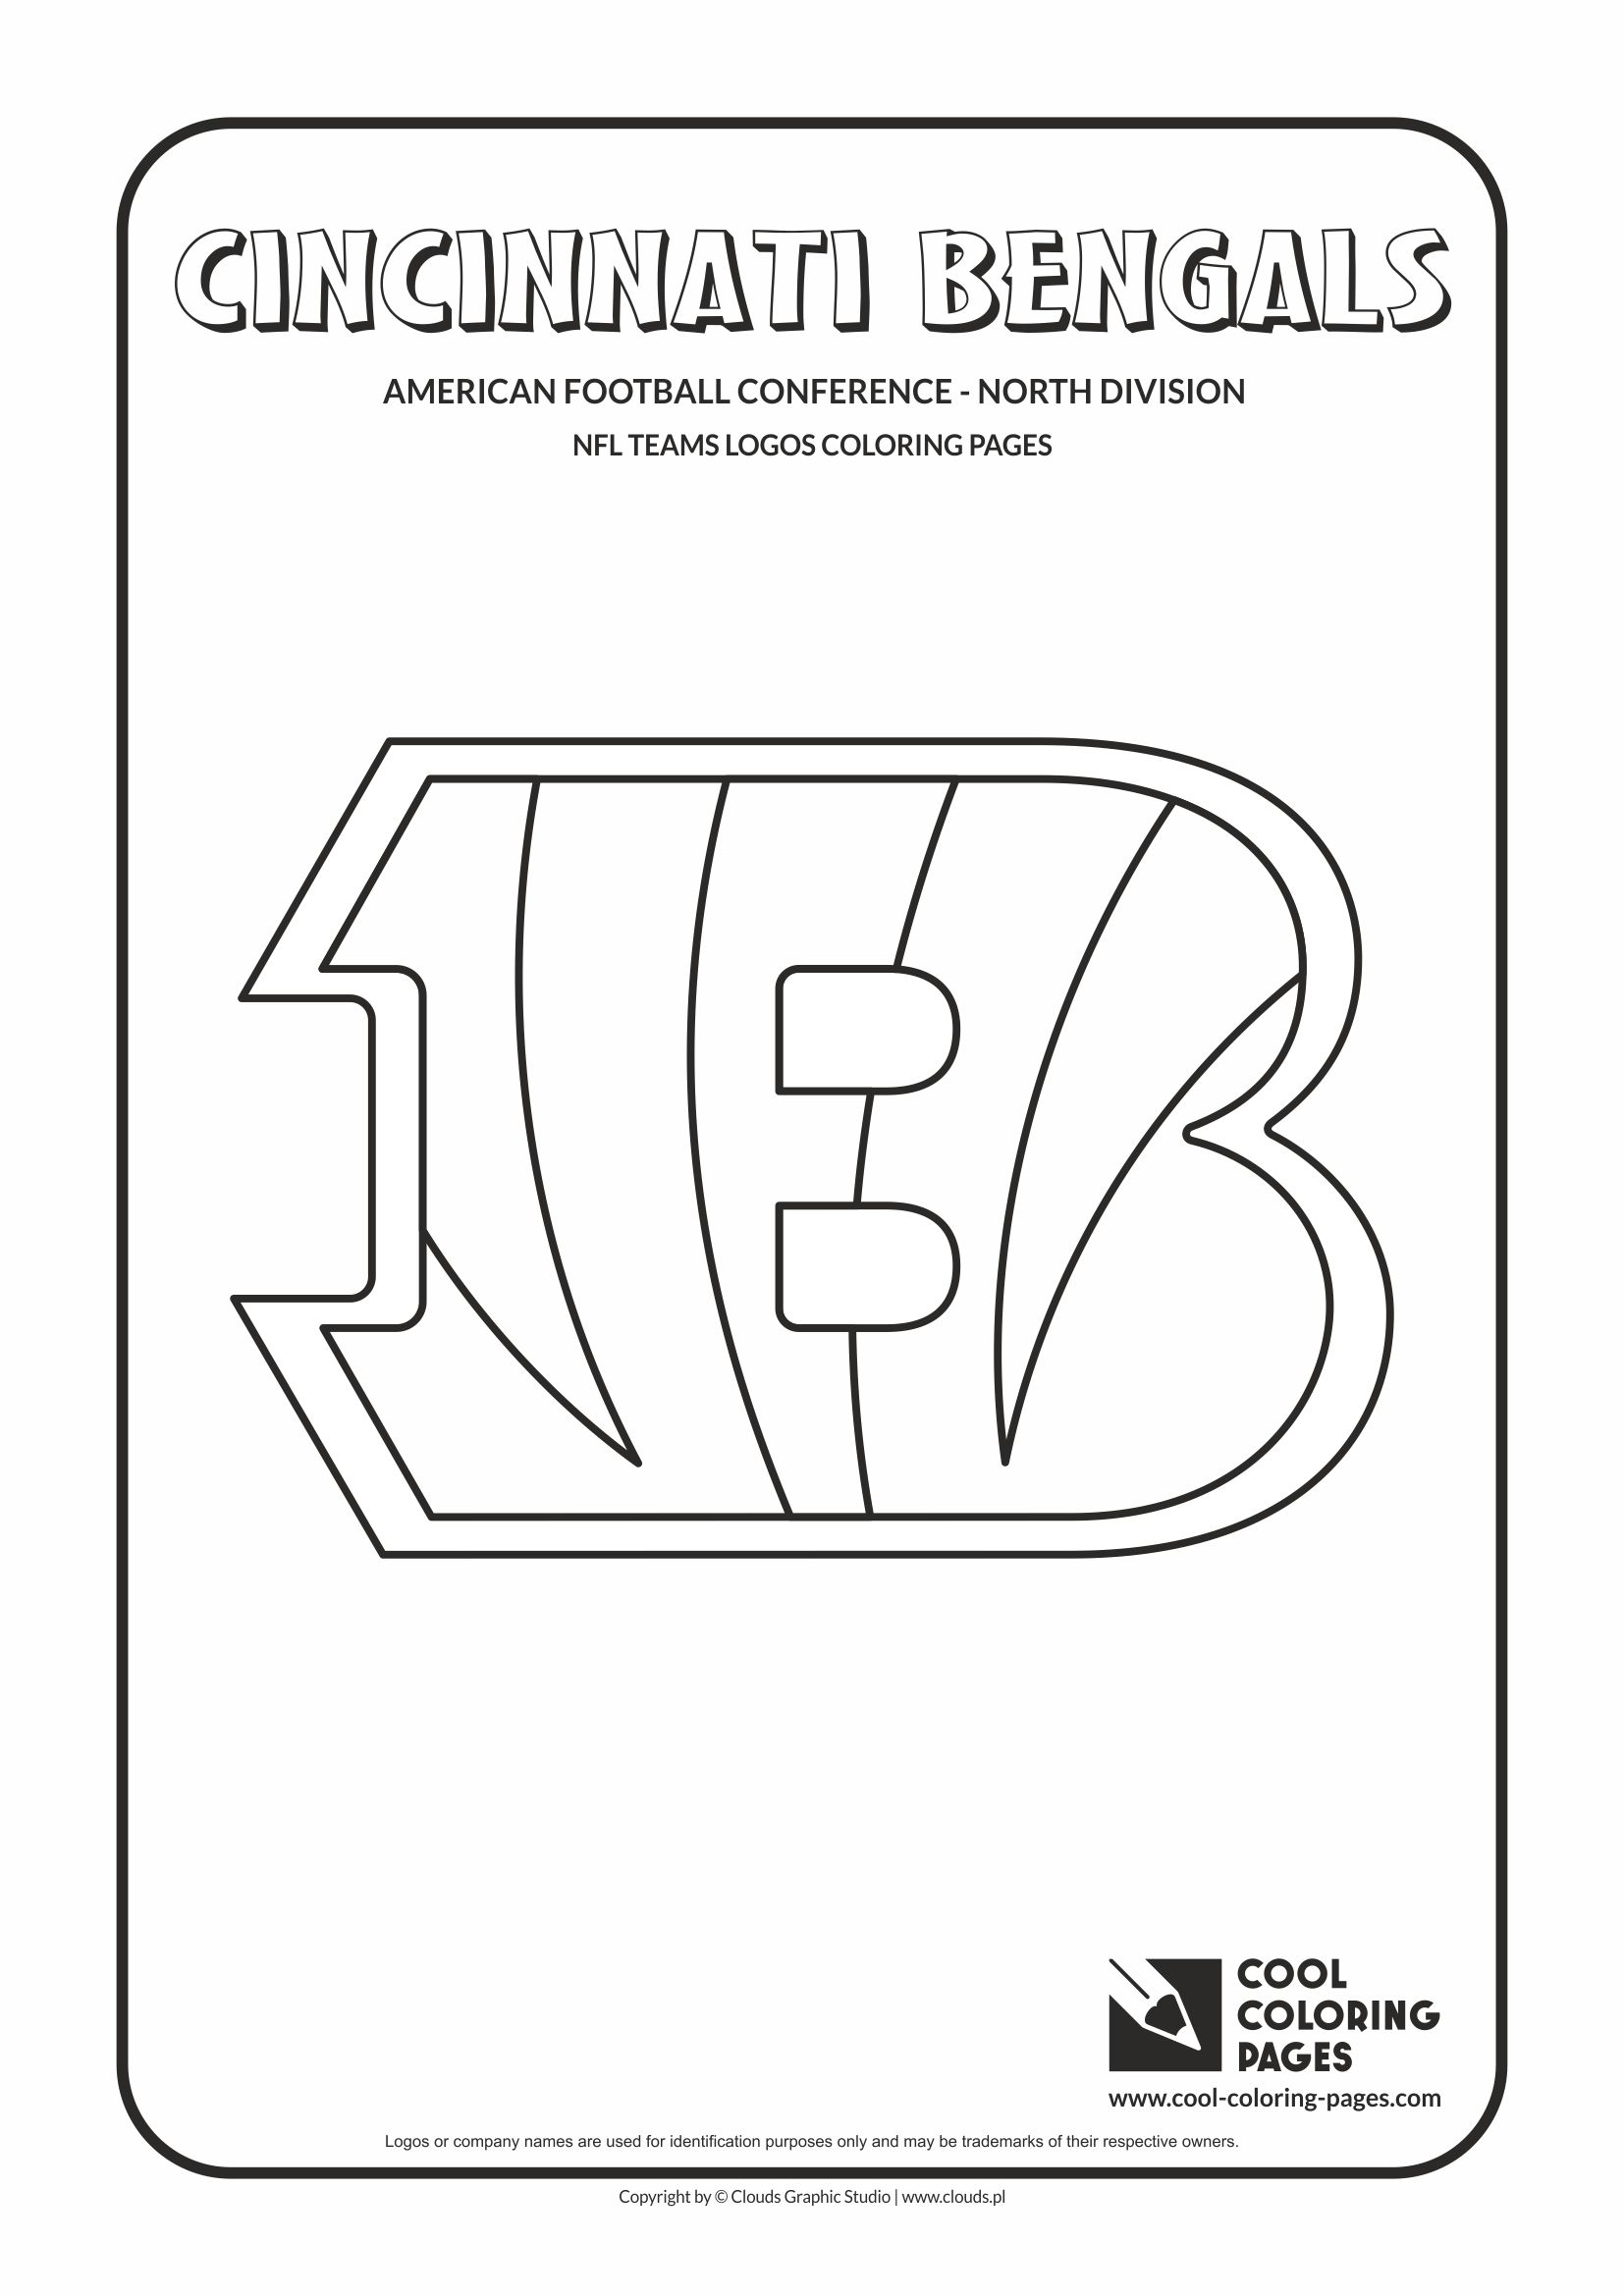 Cool Coloring Pages Nfl Teams Logos Coloring Pages Cool Coloring Pages Free Educational Coloring Pages And Activities For Kids